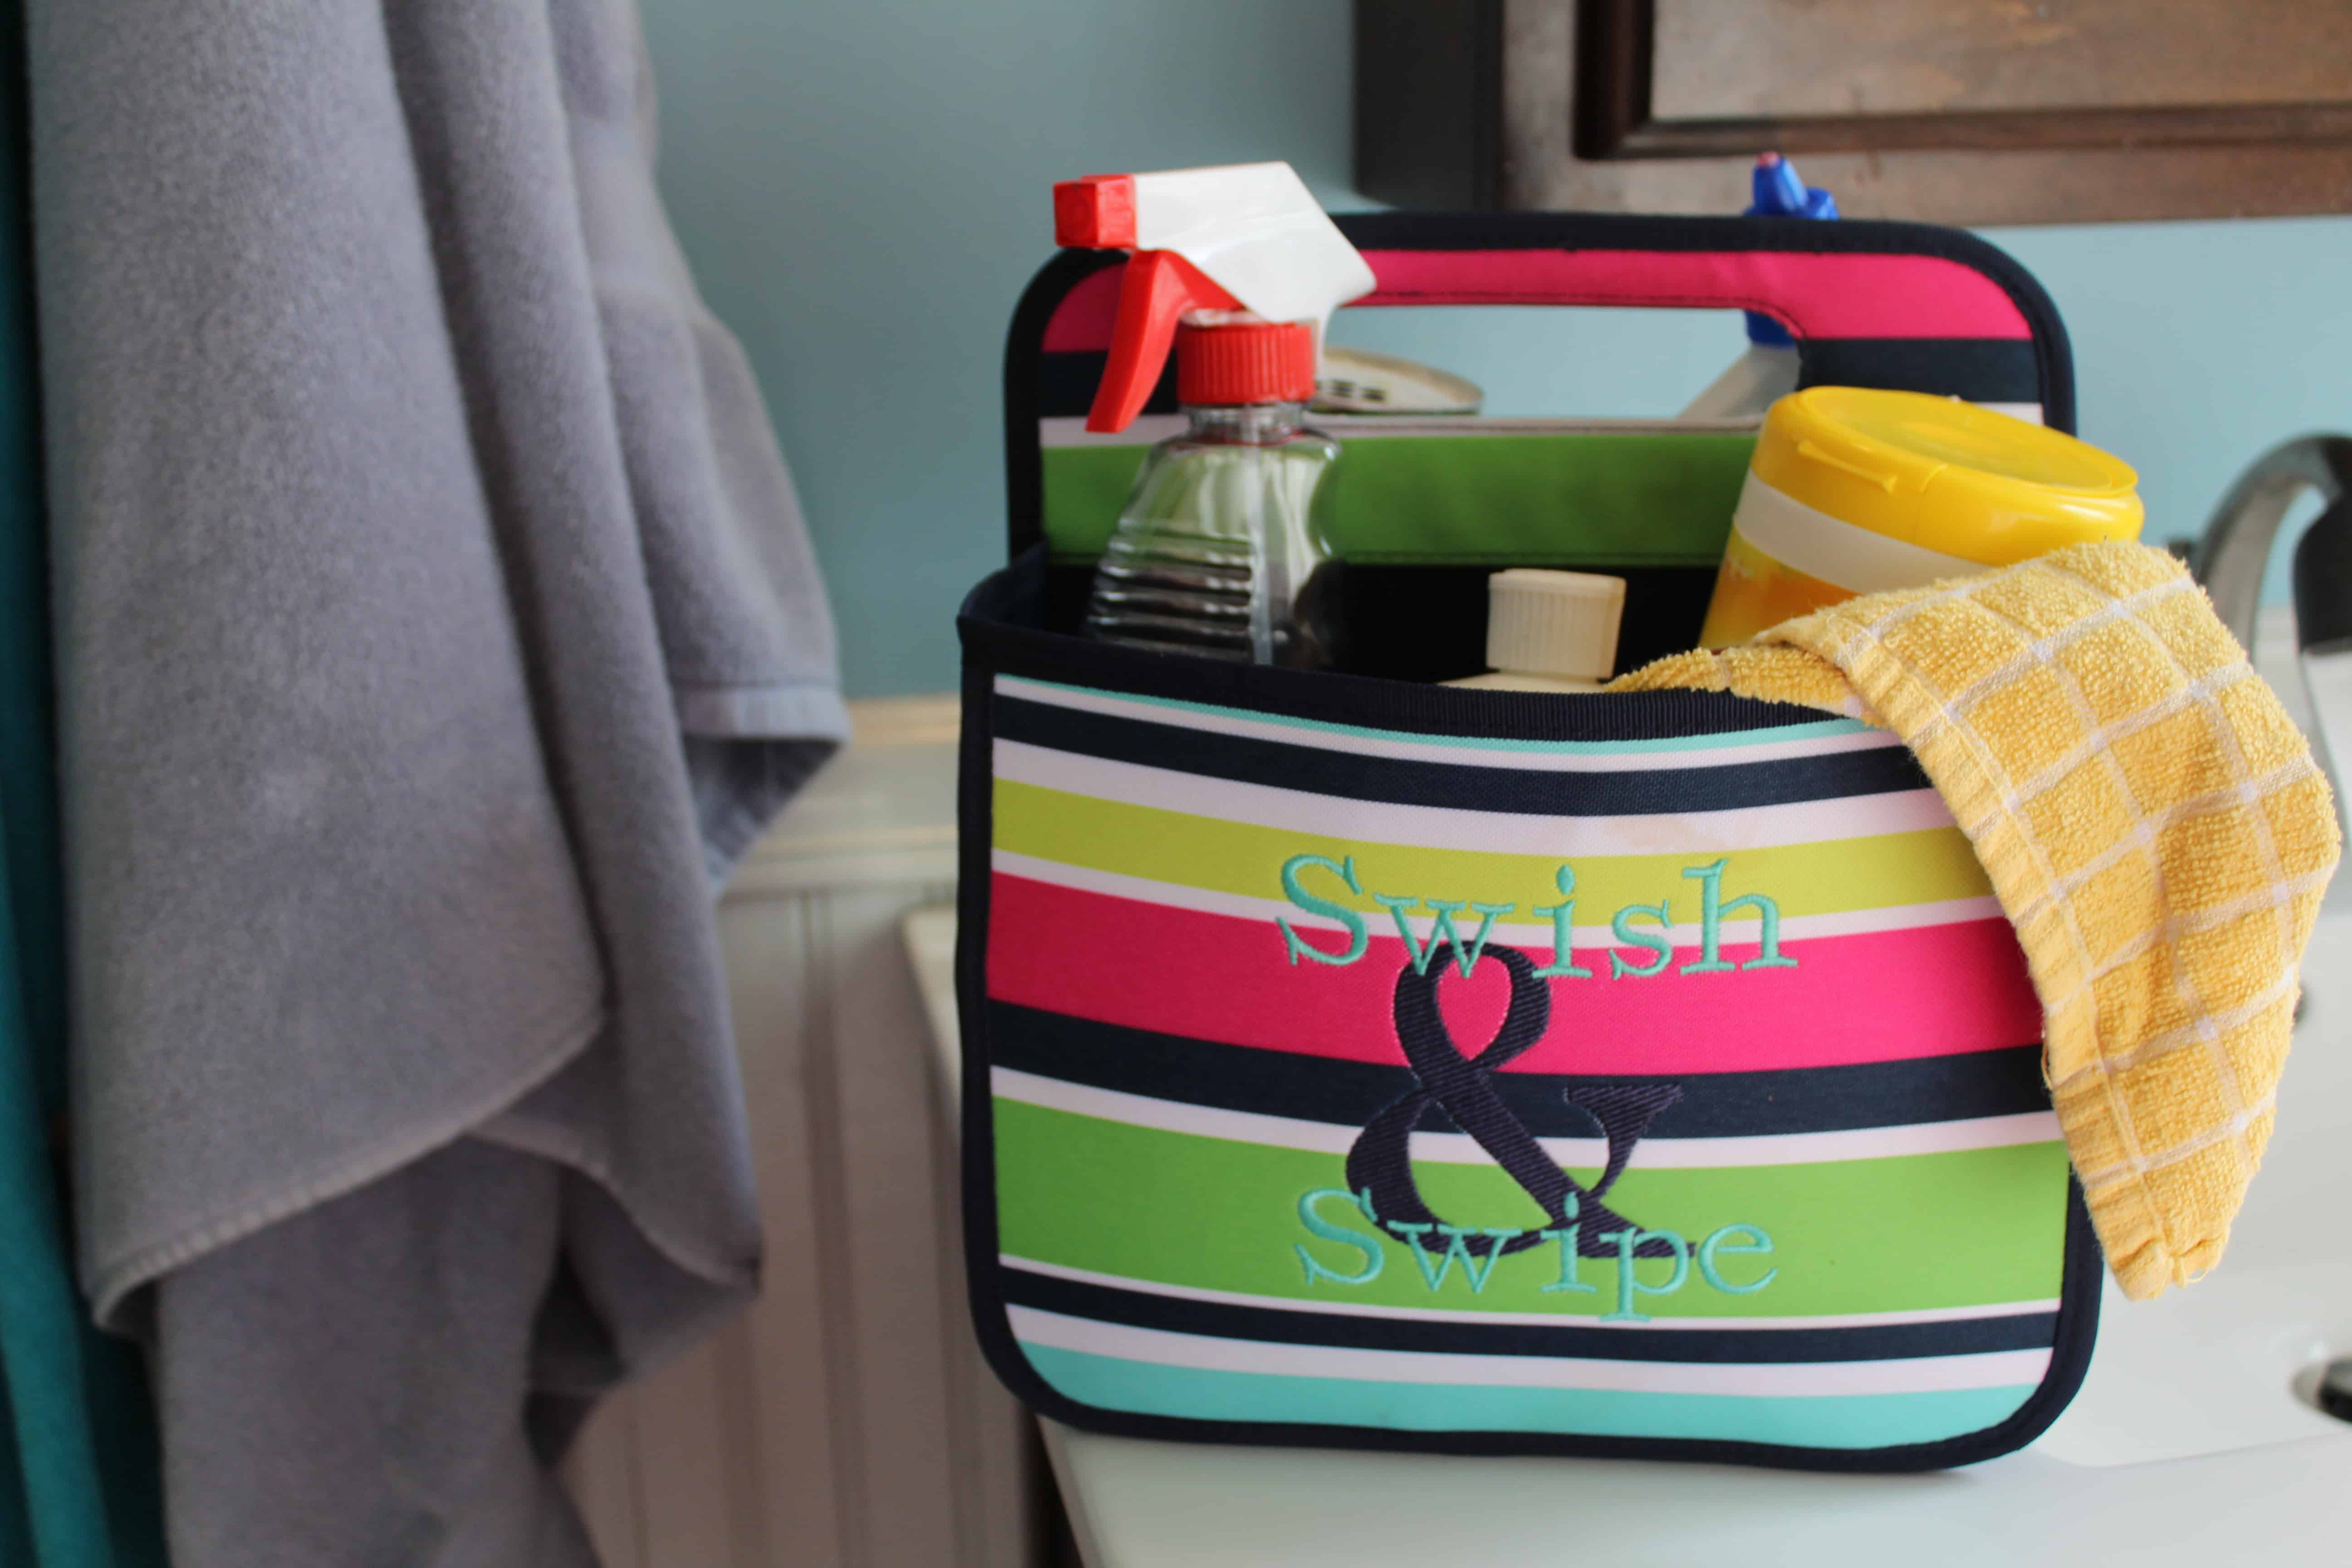 """31 Bathroom caddy bag with various chemical cleaners and cleaning rag inside of it. """"Swish & swipe"""" is embroidered on it."""